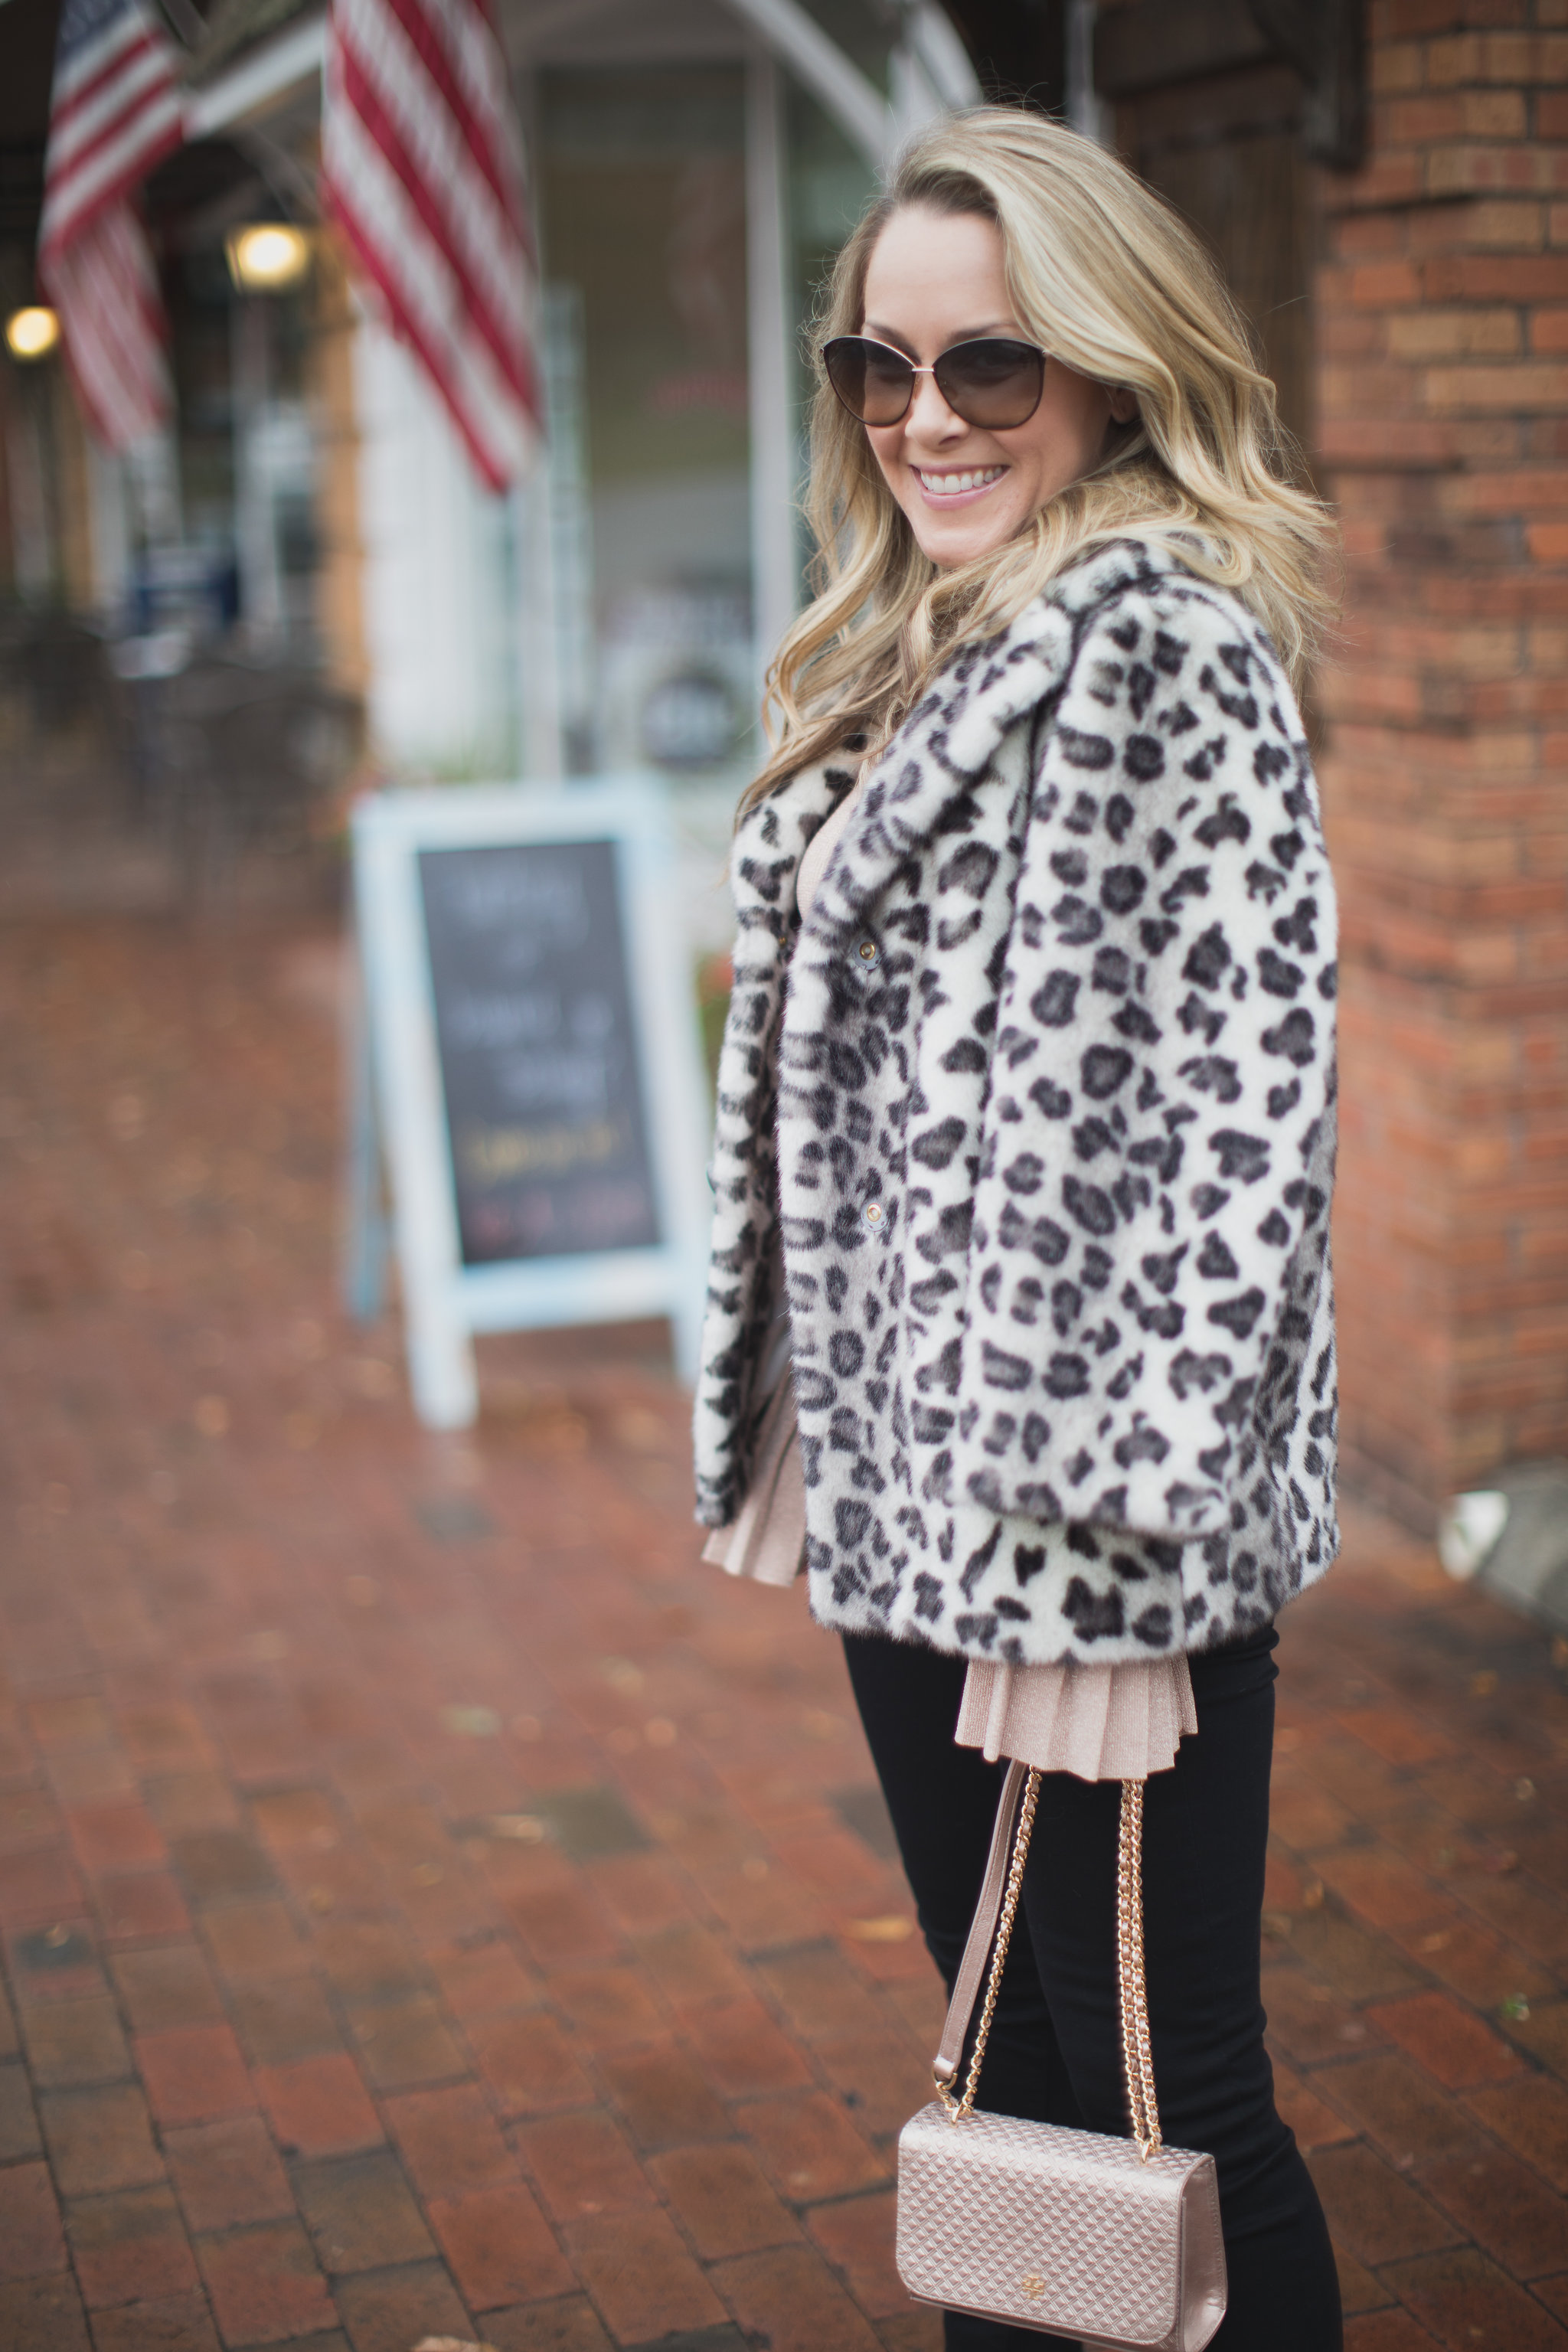 Leopard and metallic. The perfect combo for the holiday season! - Shopping with IFCHIC by North Carolina fashion blogger Every Chic Way